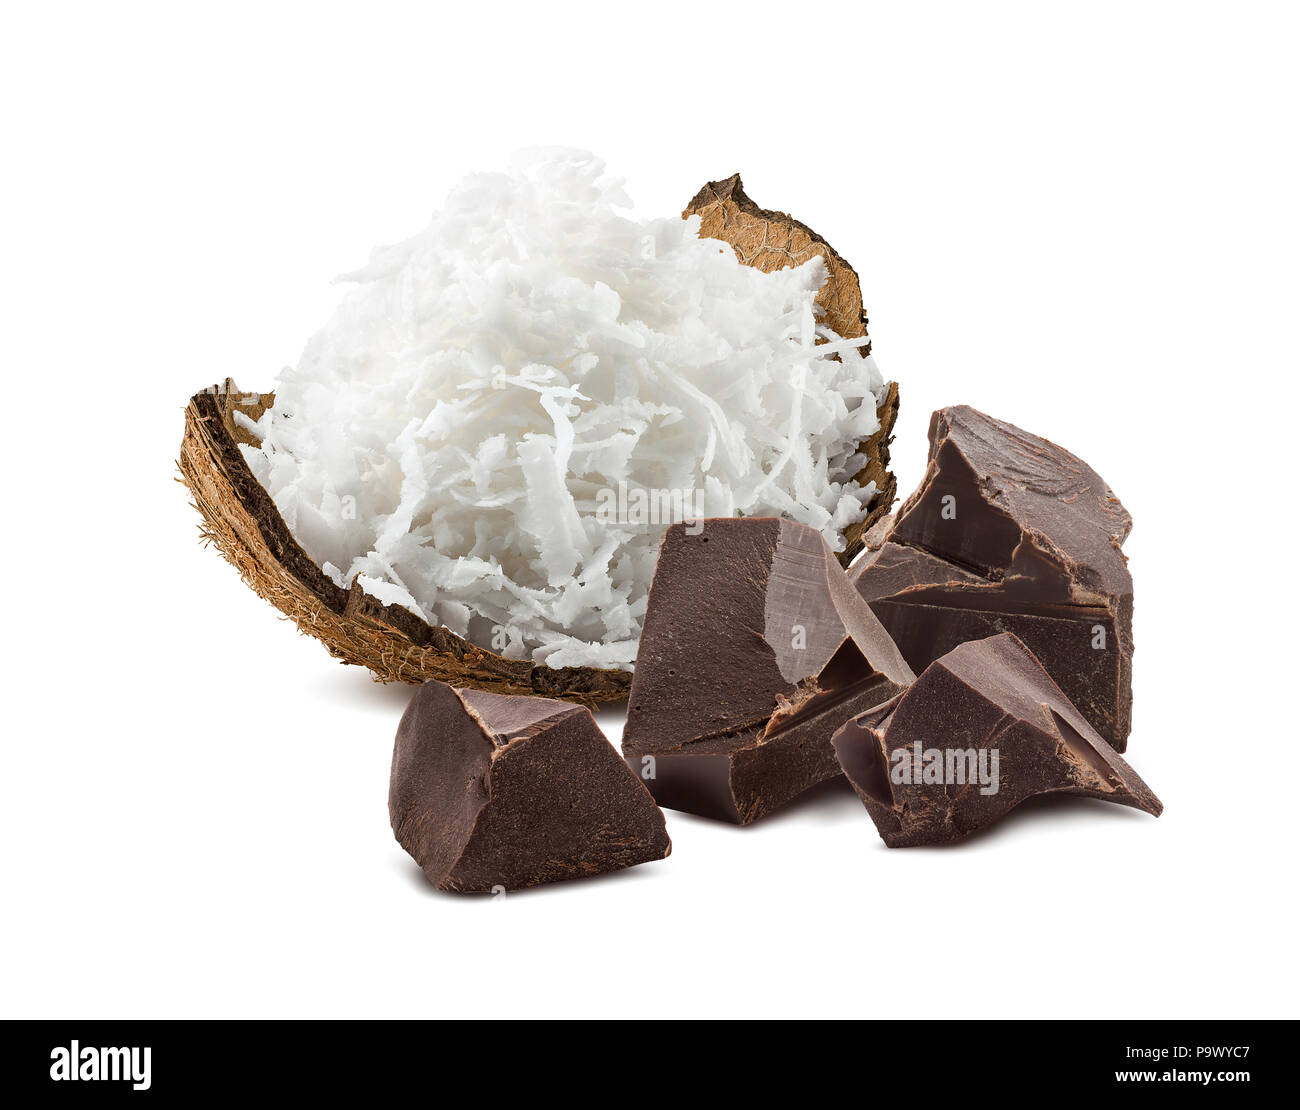 Shredded coconut and craft broken chocolate isolated on white background - Stock Image